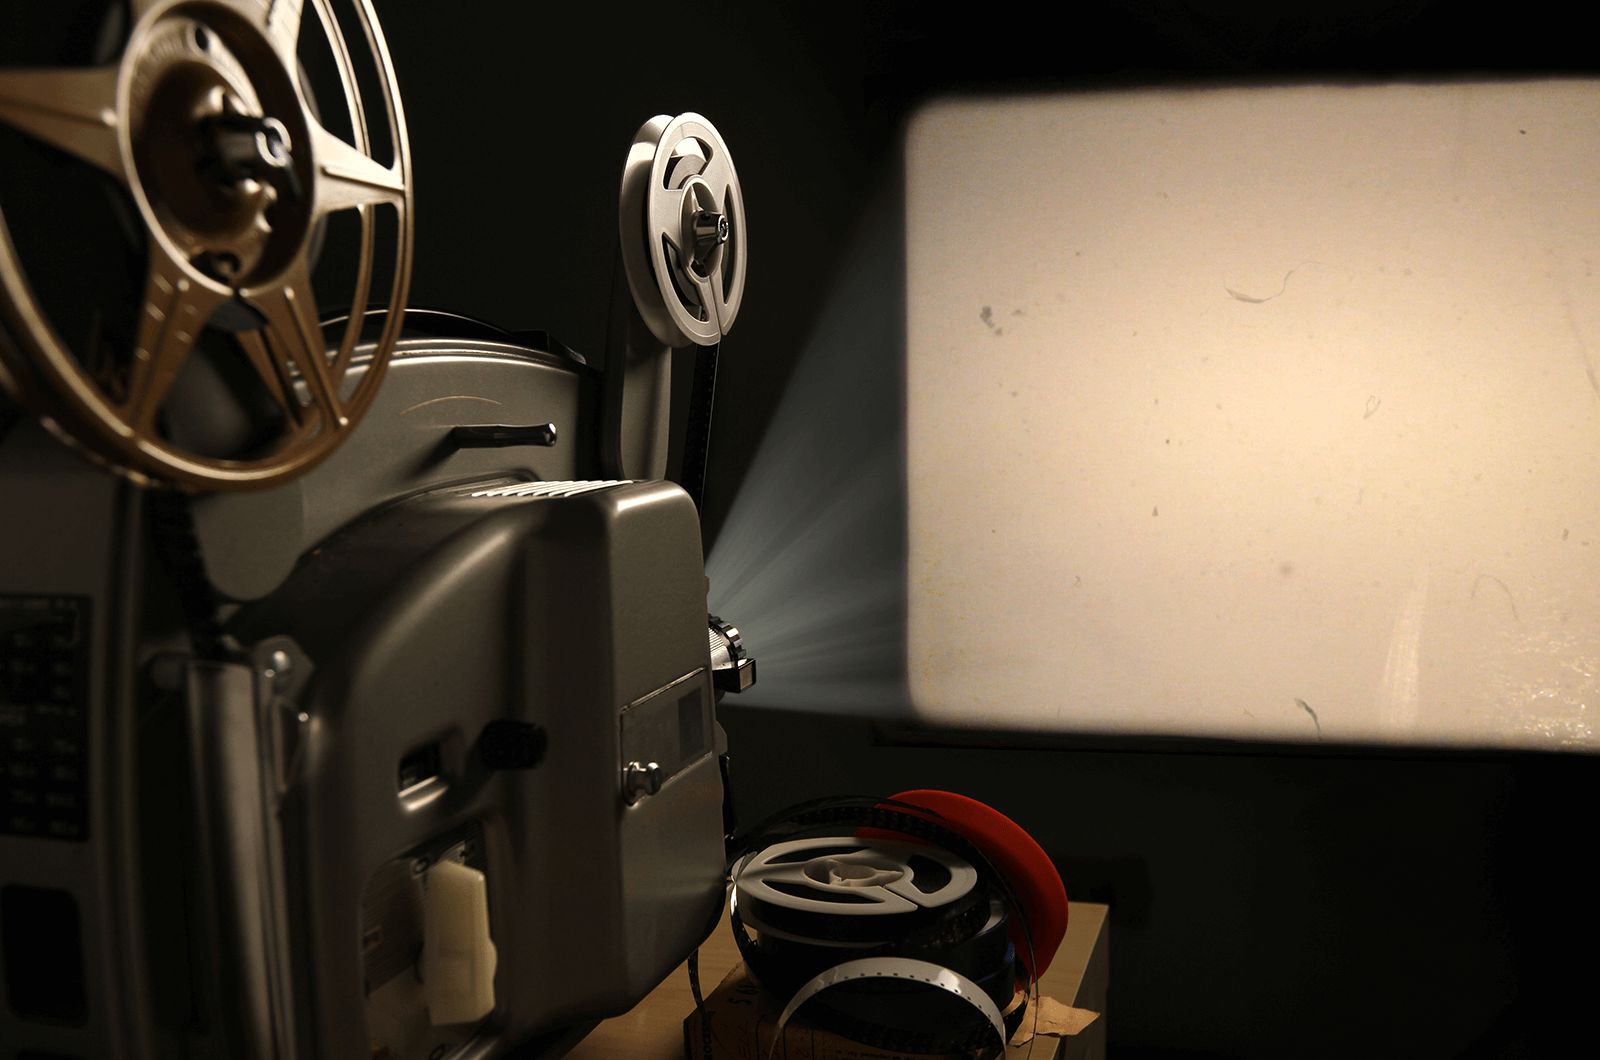 Movie reel showing light on a screen